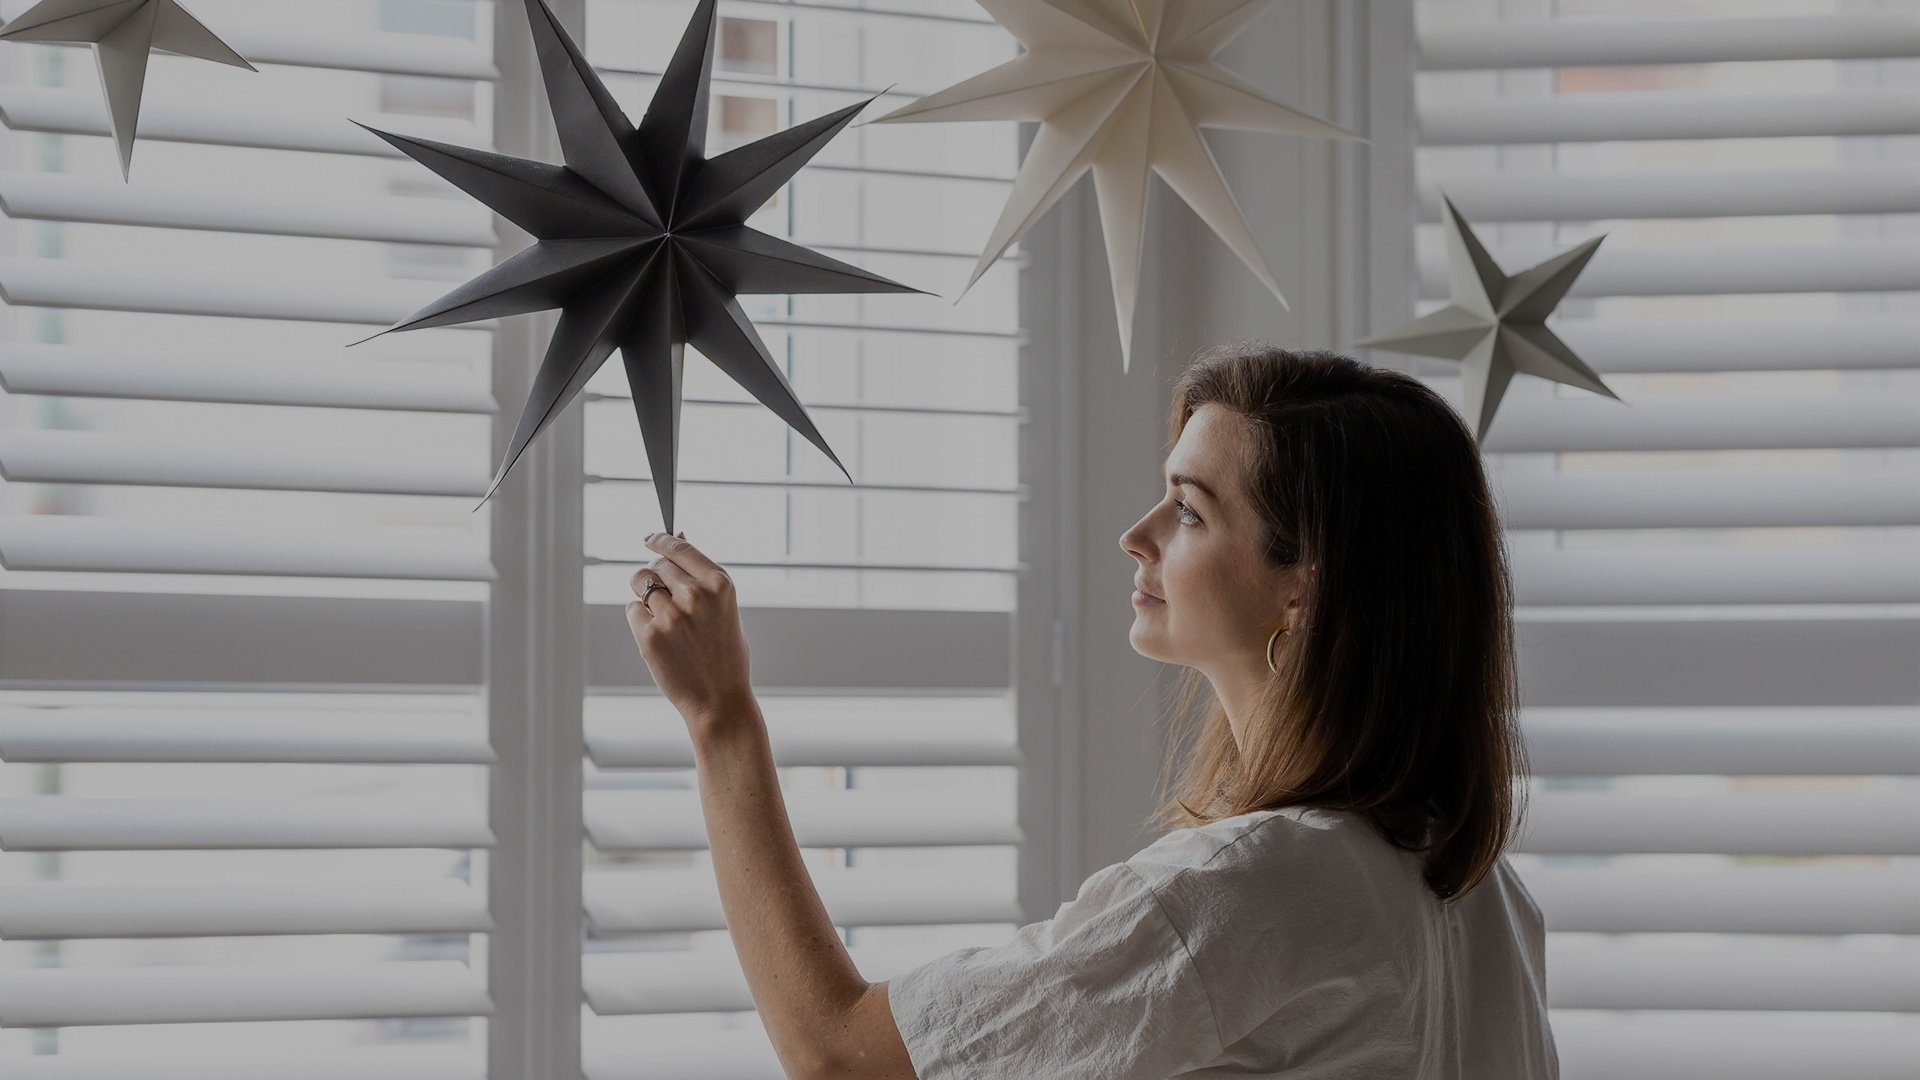 A woman touches a paper star hanging from her ceiling, in front of shuttered windows.